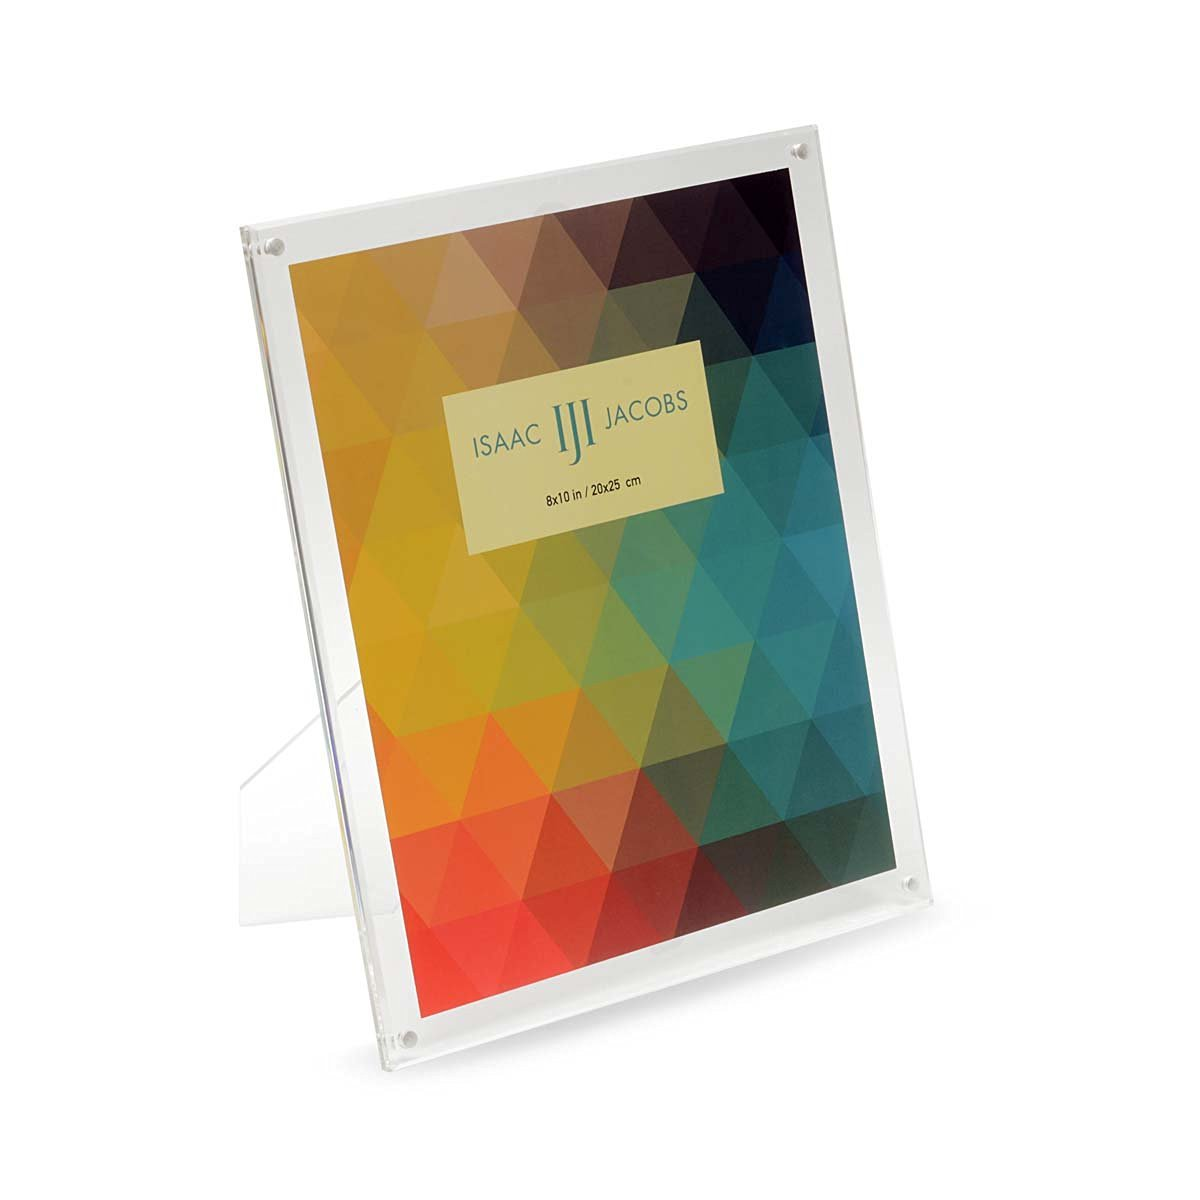 Buy Isaac Jacobs Plain Acrylic Magnetic Frame 8x10 In Cheap Price